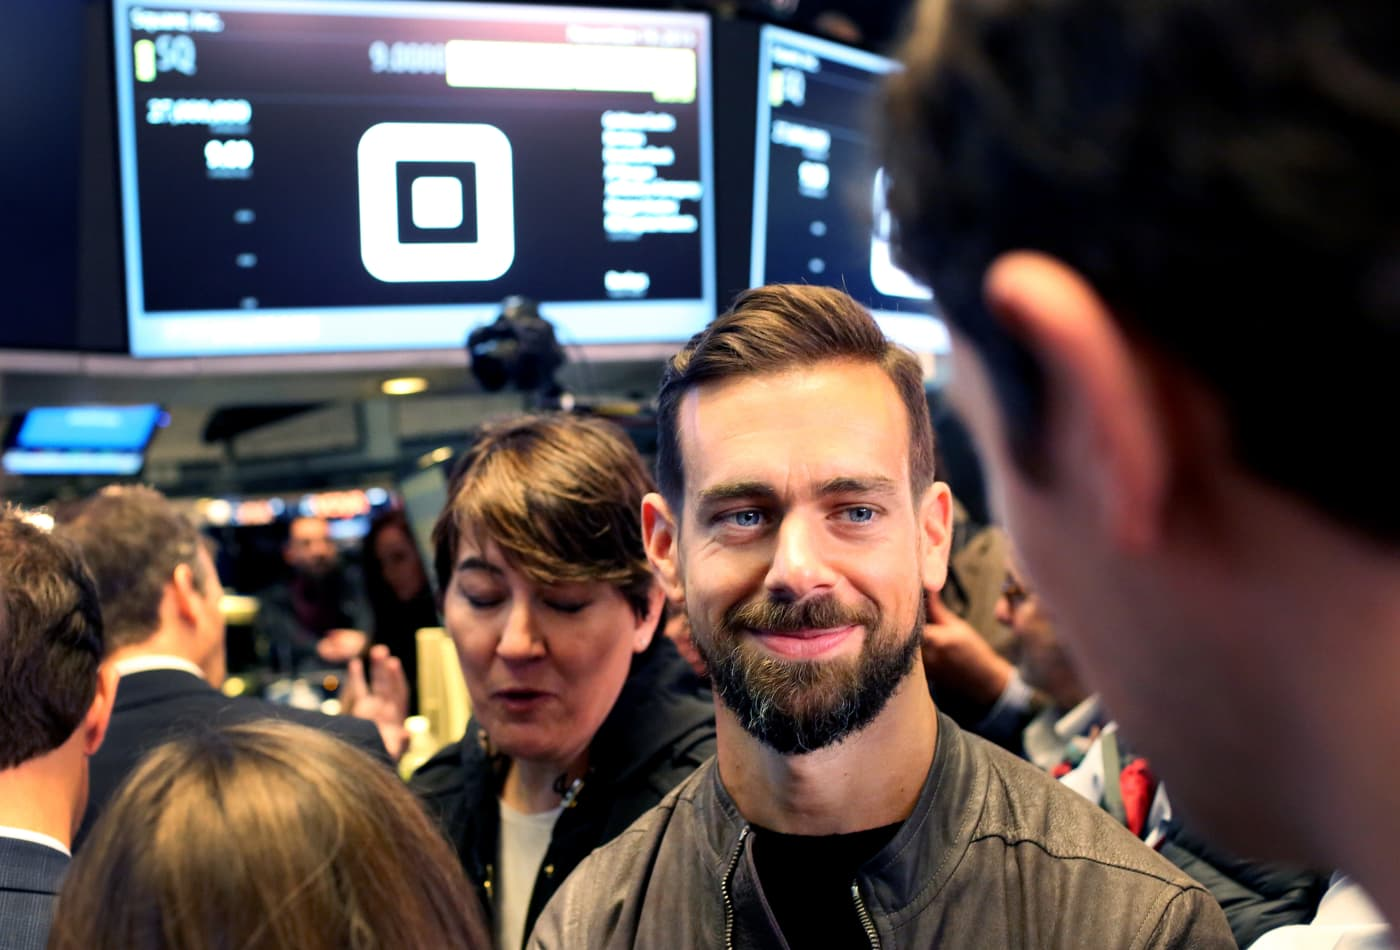 Square launches payroll feature that could boost its banking business through the Cash App